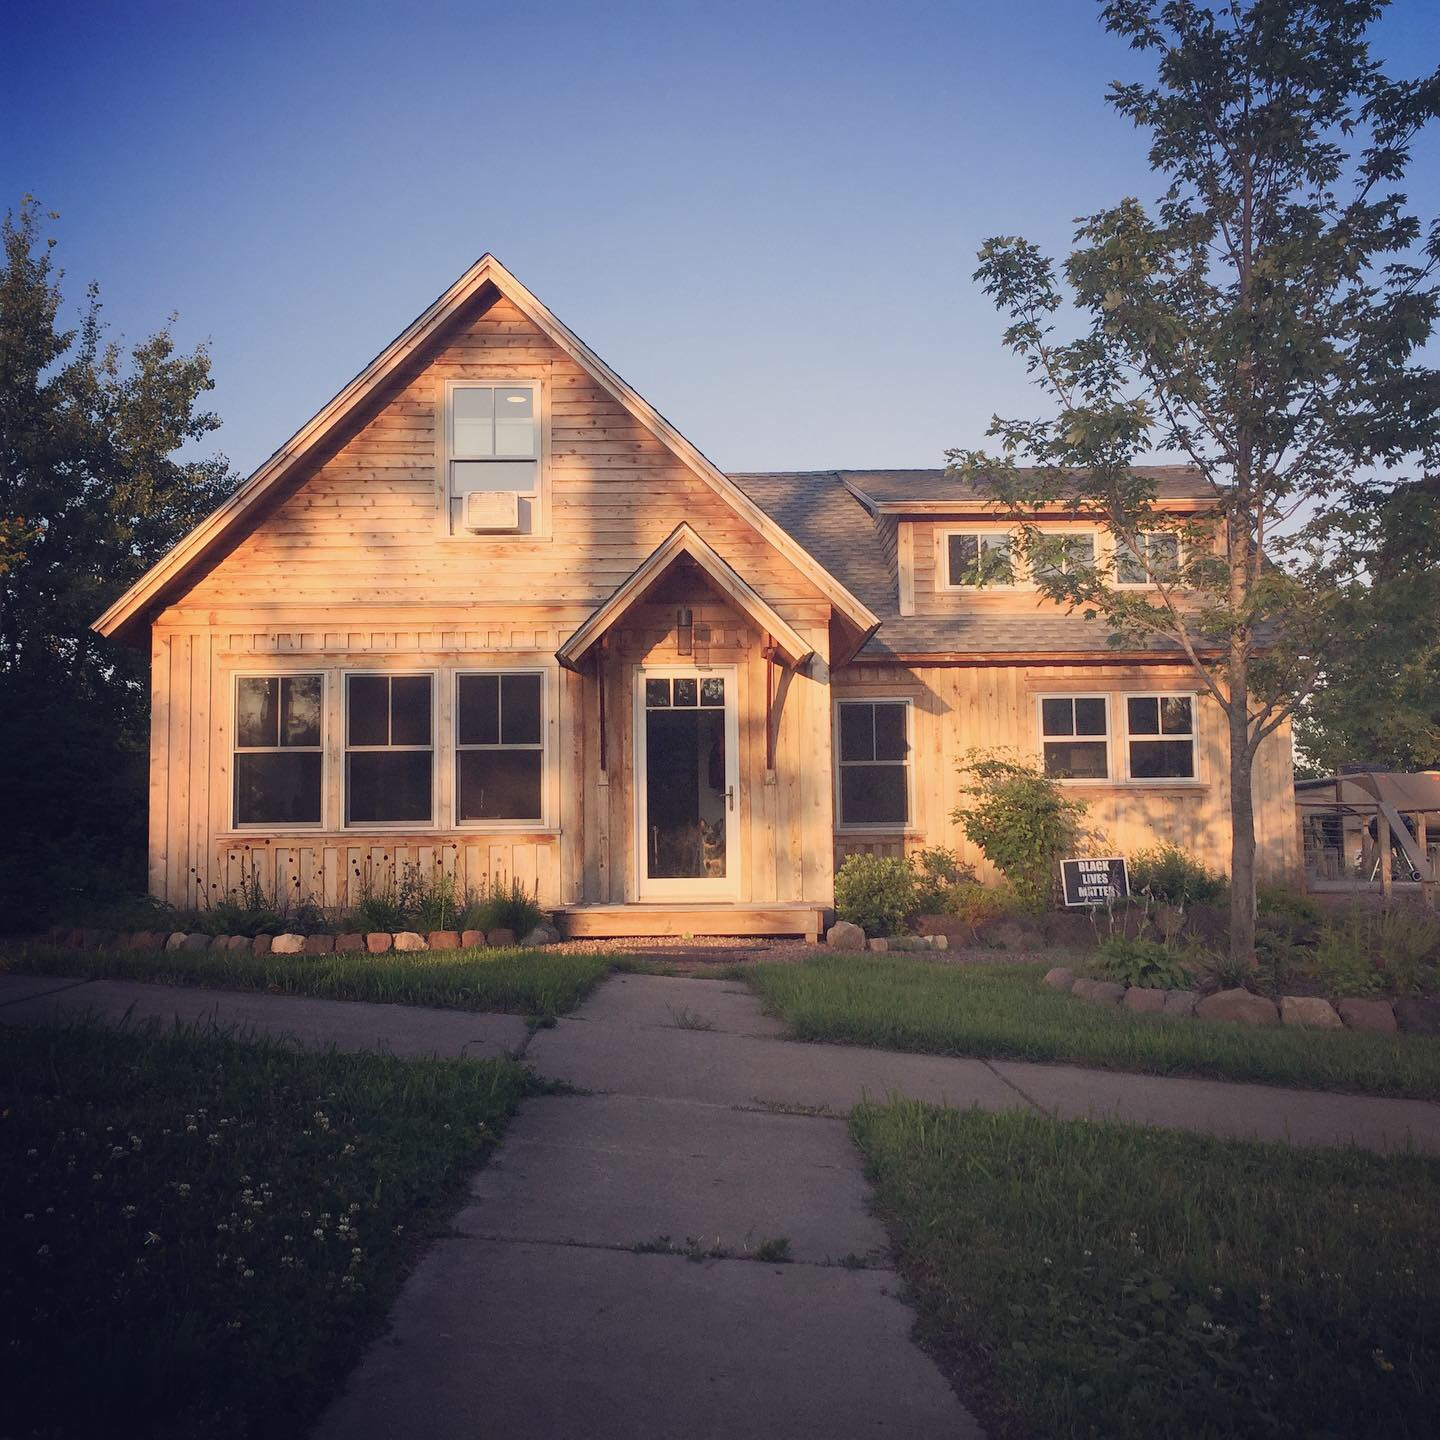 Situated at the corner of 1st Ave W and 4th St, this freshly remodeled home features wonderful views of Lake Superior, the East Bay of Grand Marais, and of the Grand Marais harbor. New Western Red Cedar siding and Marvin Integrity windows and doors throughout.